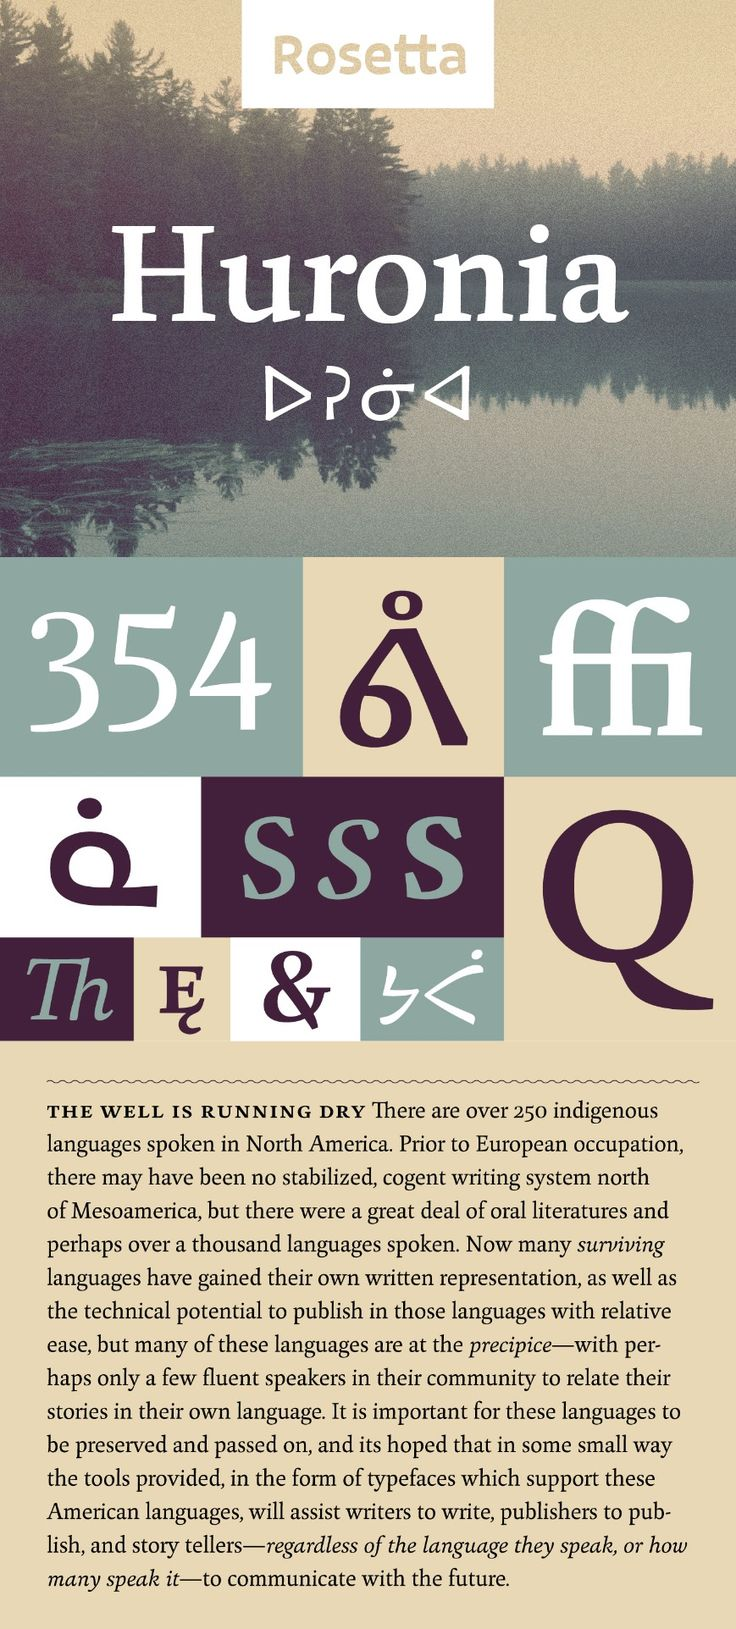 Huronia typeface by Ross Mills  Huronia is a distinct typeface family that supports all Native American and European languages. Its advanced features and elegant æsthetic are ideal for book typography.  #amerindian #cherokee #inuktitut #book #typography #type #fonts #elegant #design #graphicdesign #inspirations  https://www.rosettatype.com/Huronia